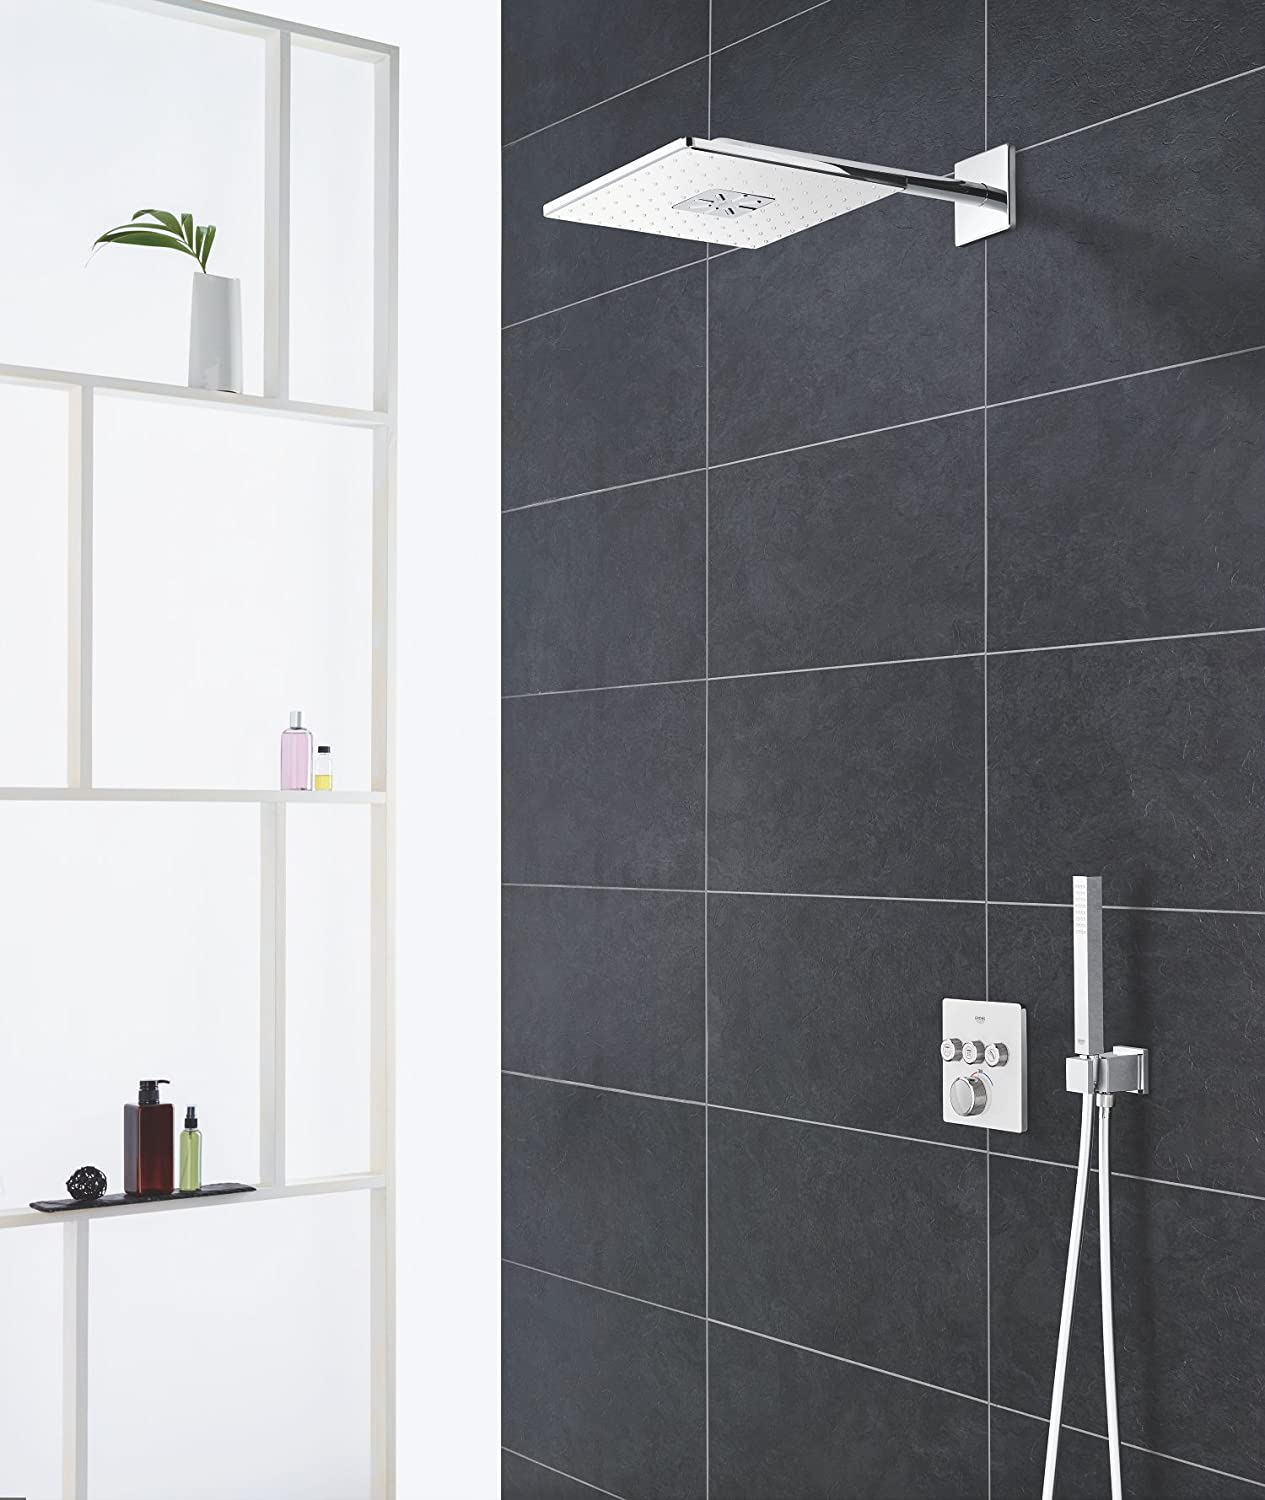 Chrome 400 mm GROHE Set Douche de t/ête Bras 2 Jets Rainshower 310 SmartActive Cube 26479LS0